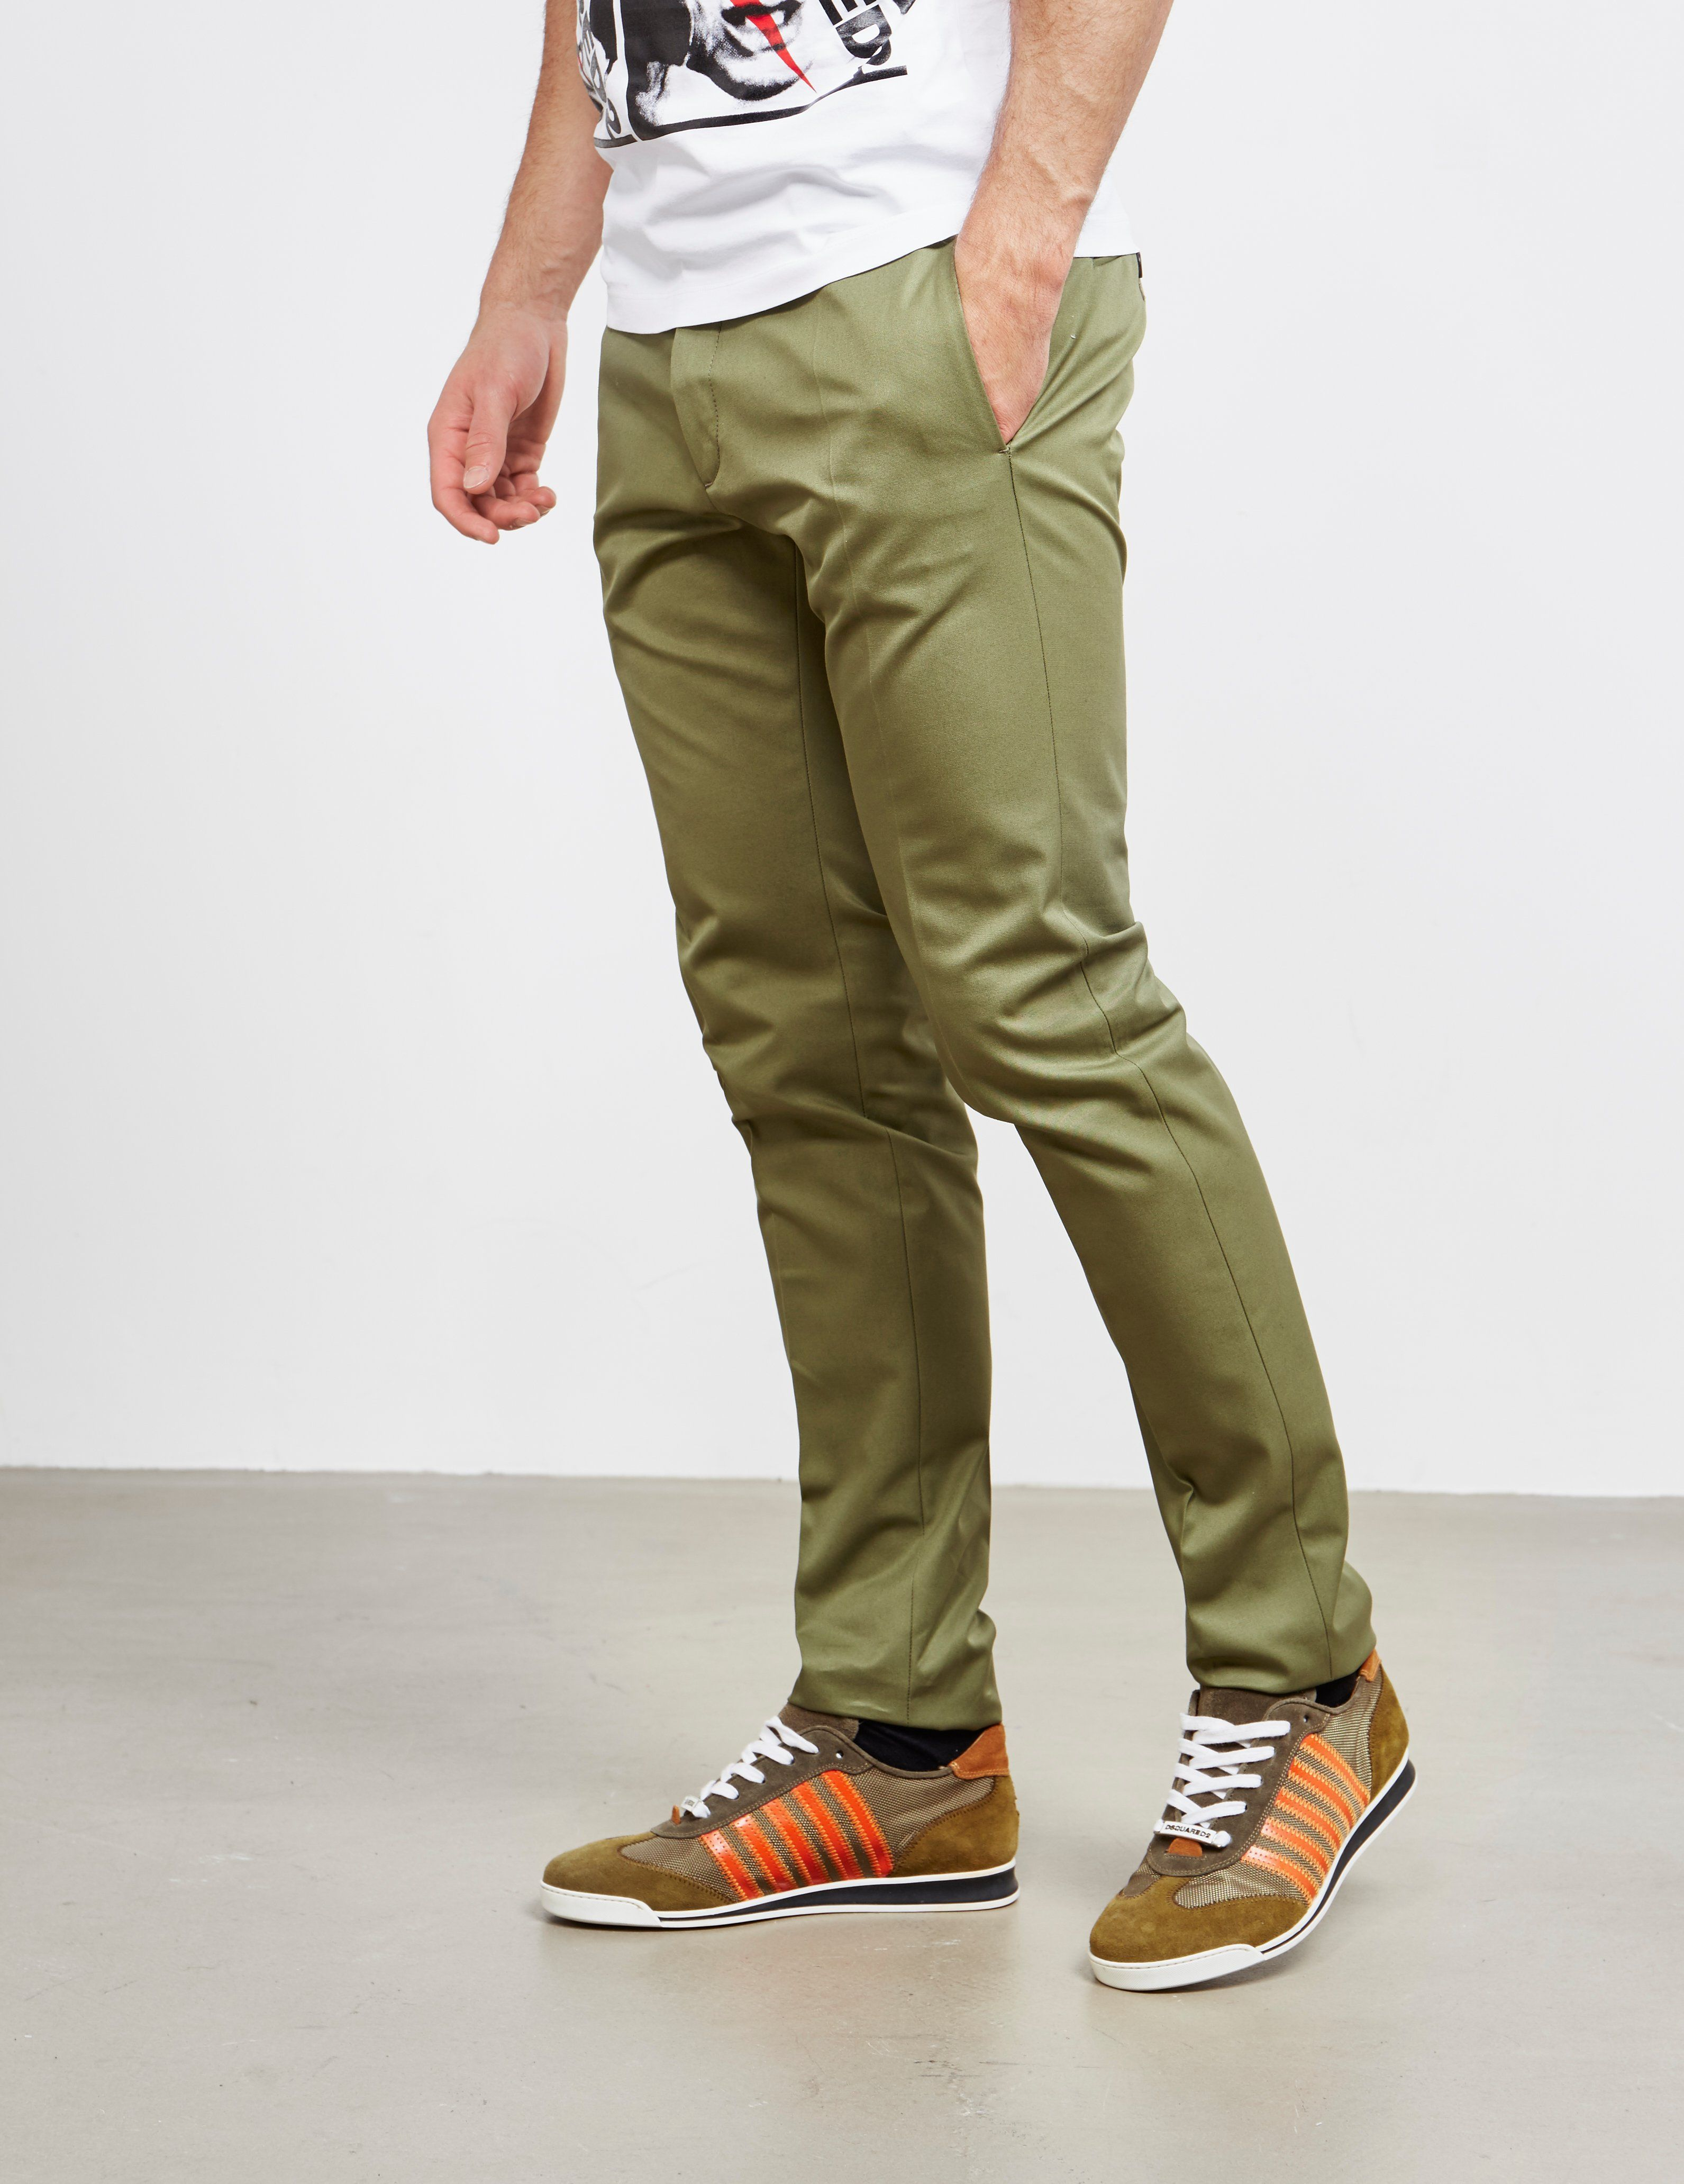 Dsquared2 Tidy Chino Pants - Online Exclusive